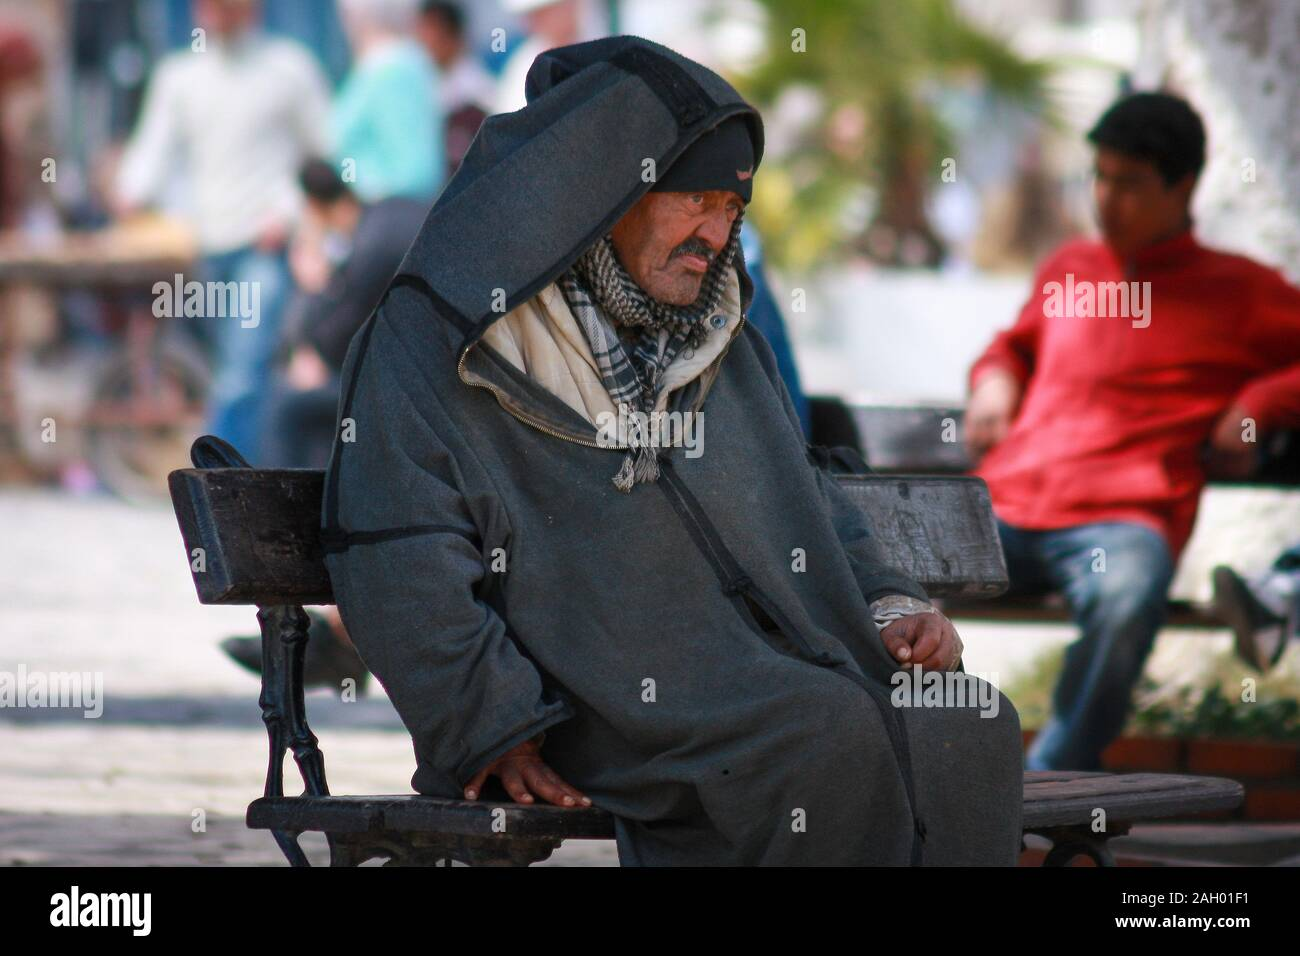 An Old Tunisian Man Dressed In A Traditional Robe Sitting On A Bench Ni The Square In Sousse Tunisia Stock Photo Alamy